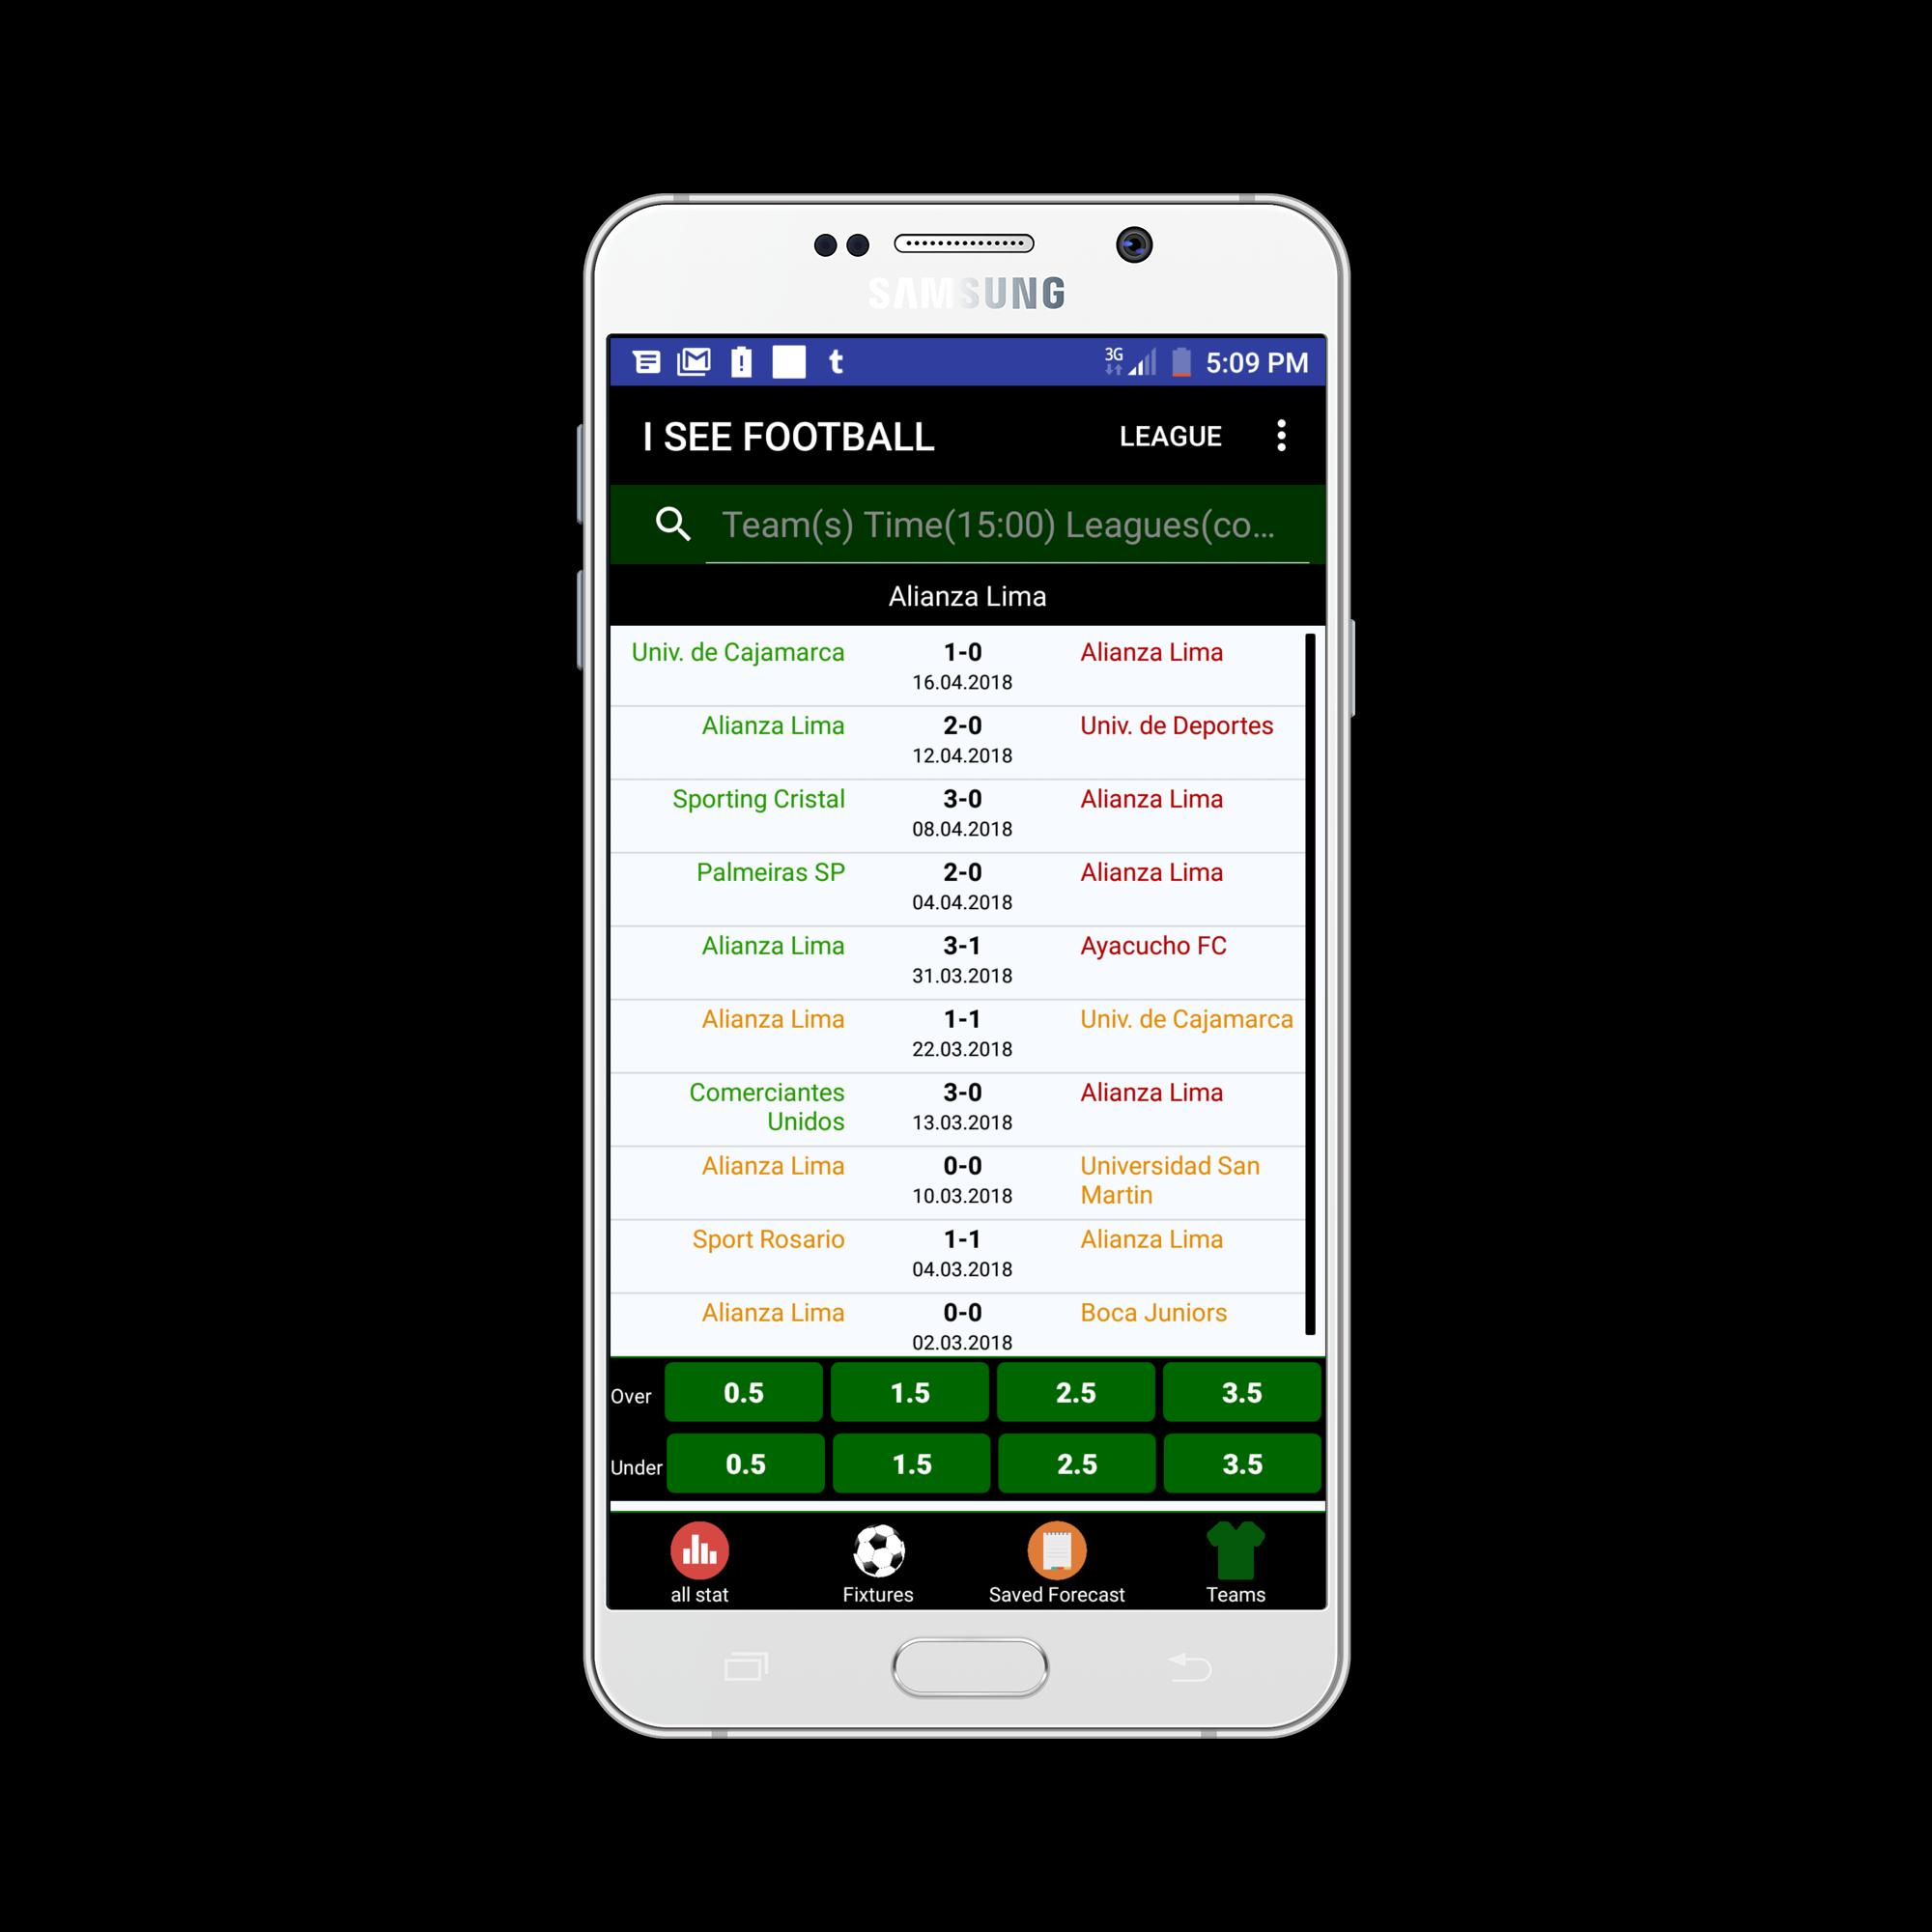 Soccer Statistics App(I See Football) for Android - APK Download